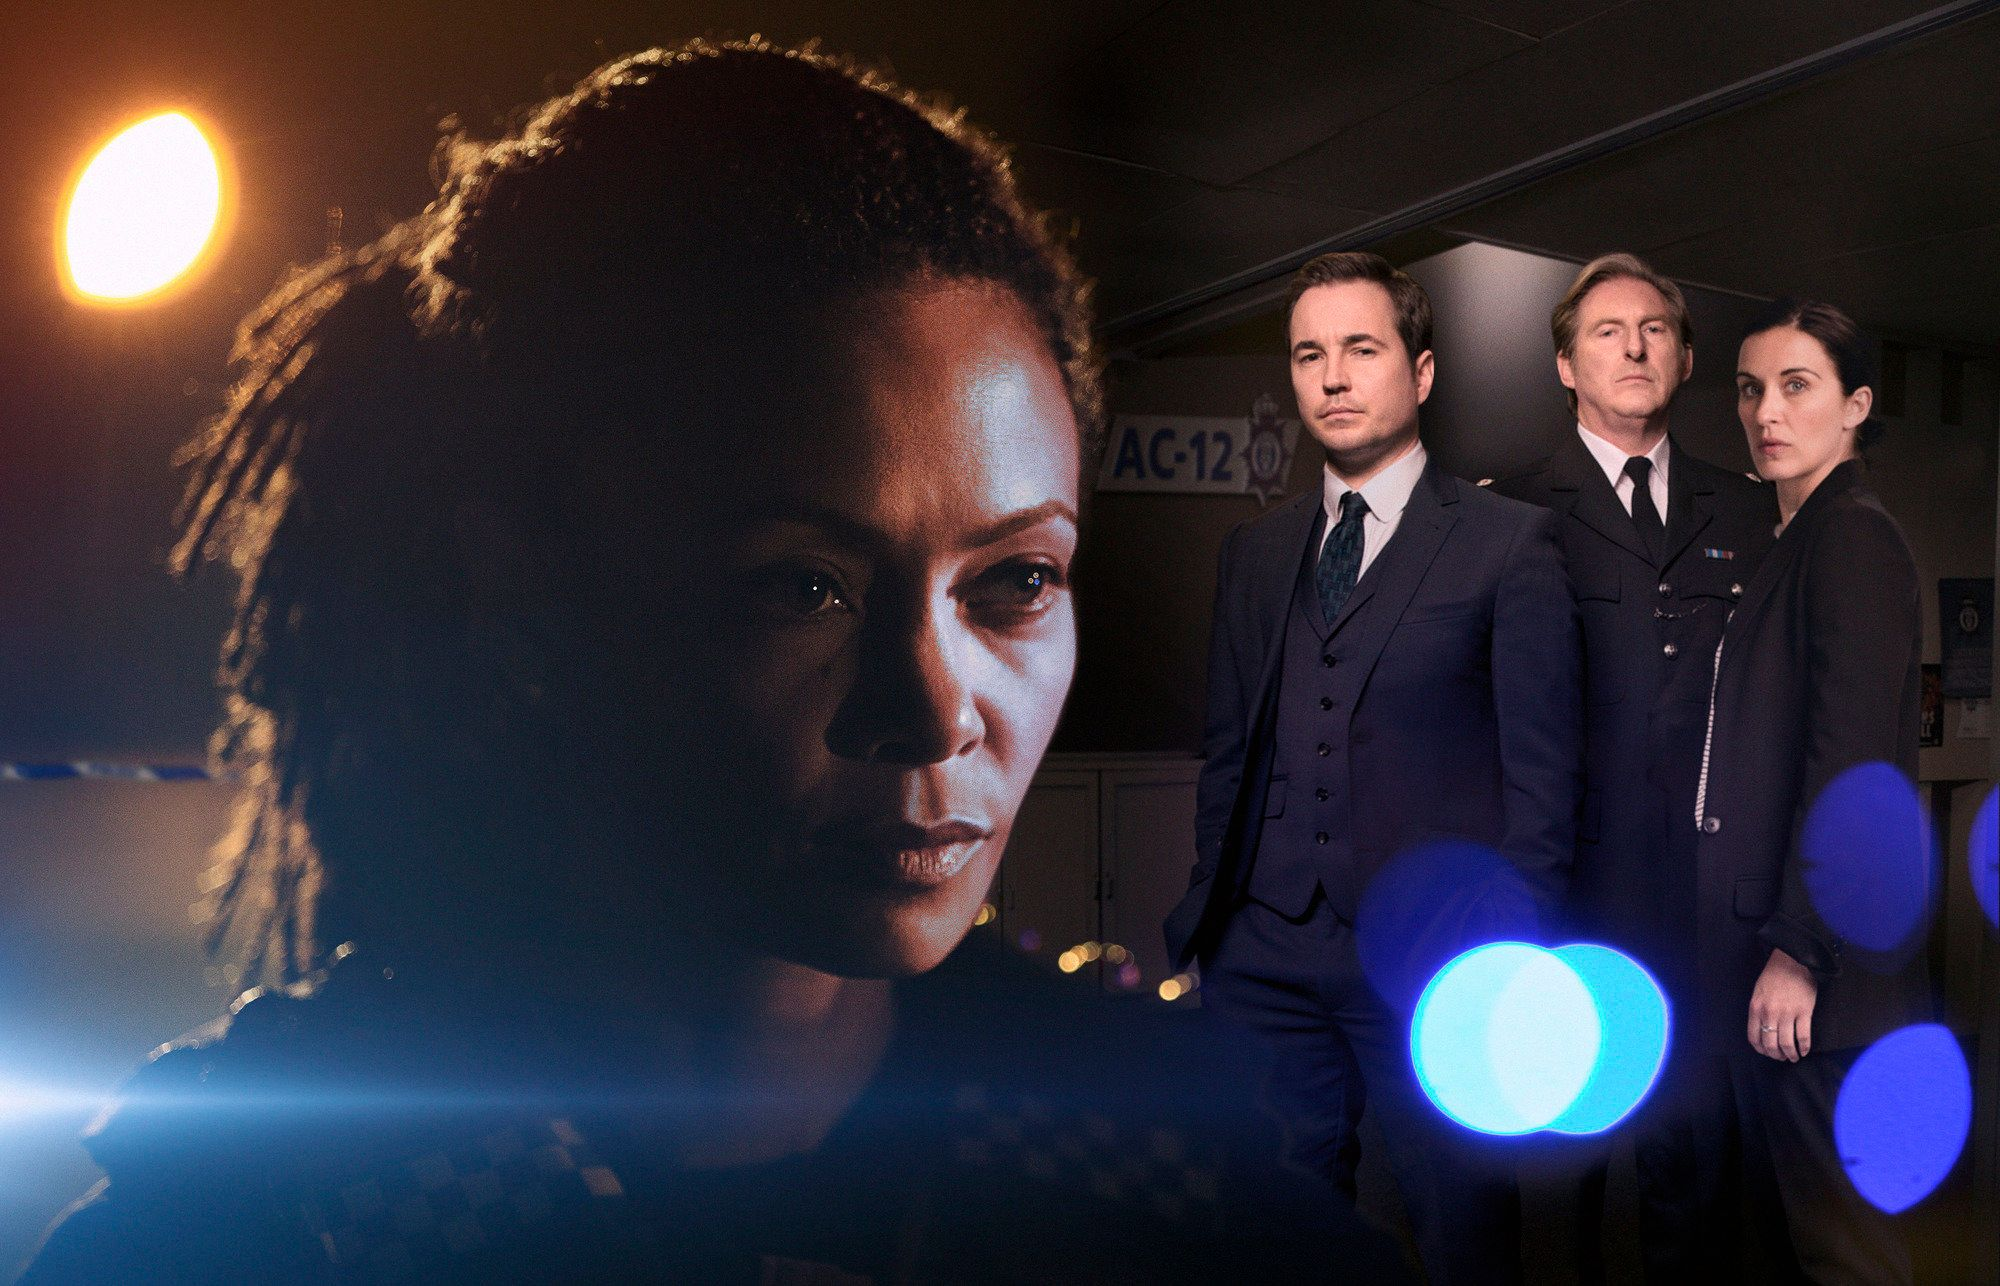 These 'Line Of Duty' Fan Theories Will Make You Rethink Who Balaclava Man